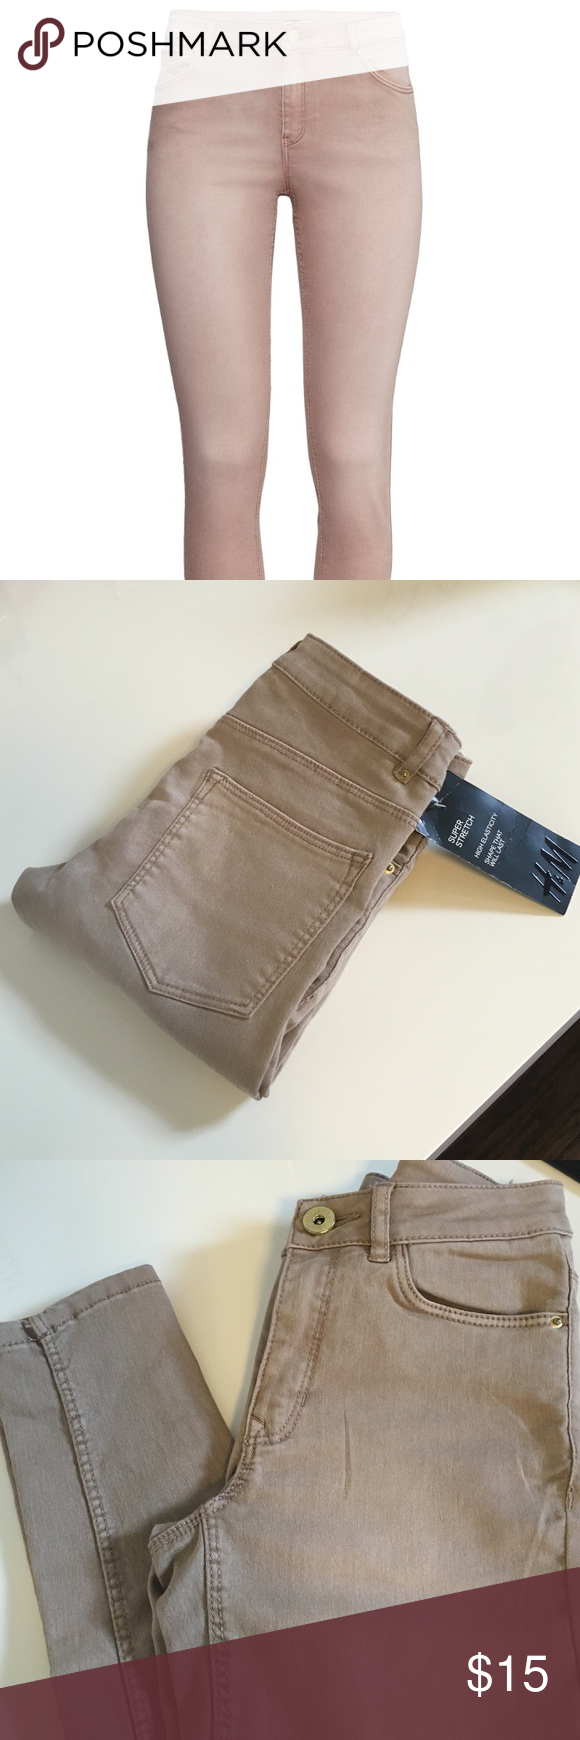 H&M Super Stretchy Shaping Tan Jeans 2 Brand New H&M 5-pocket pants in superstretch with slim legs and a regular waist. Size 2 = XS  Color : Tan / Beige.                      🌵 Make me an offer xo H&M Pants Skinny